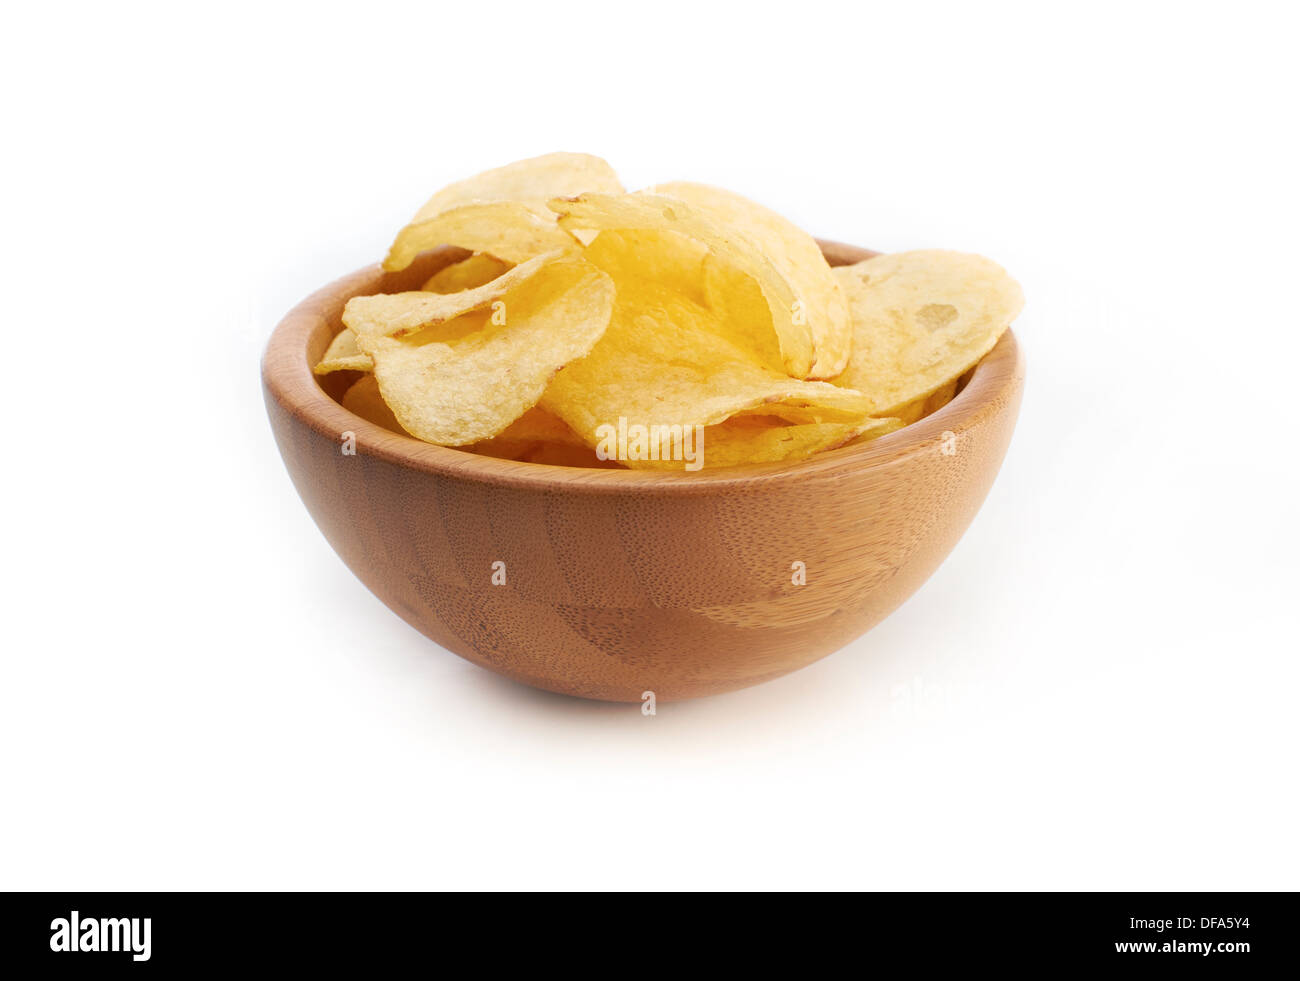 A bowl of salted crisps on a white background. - Stock Image